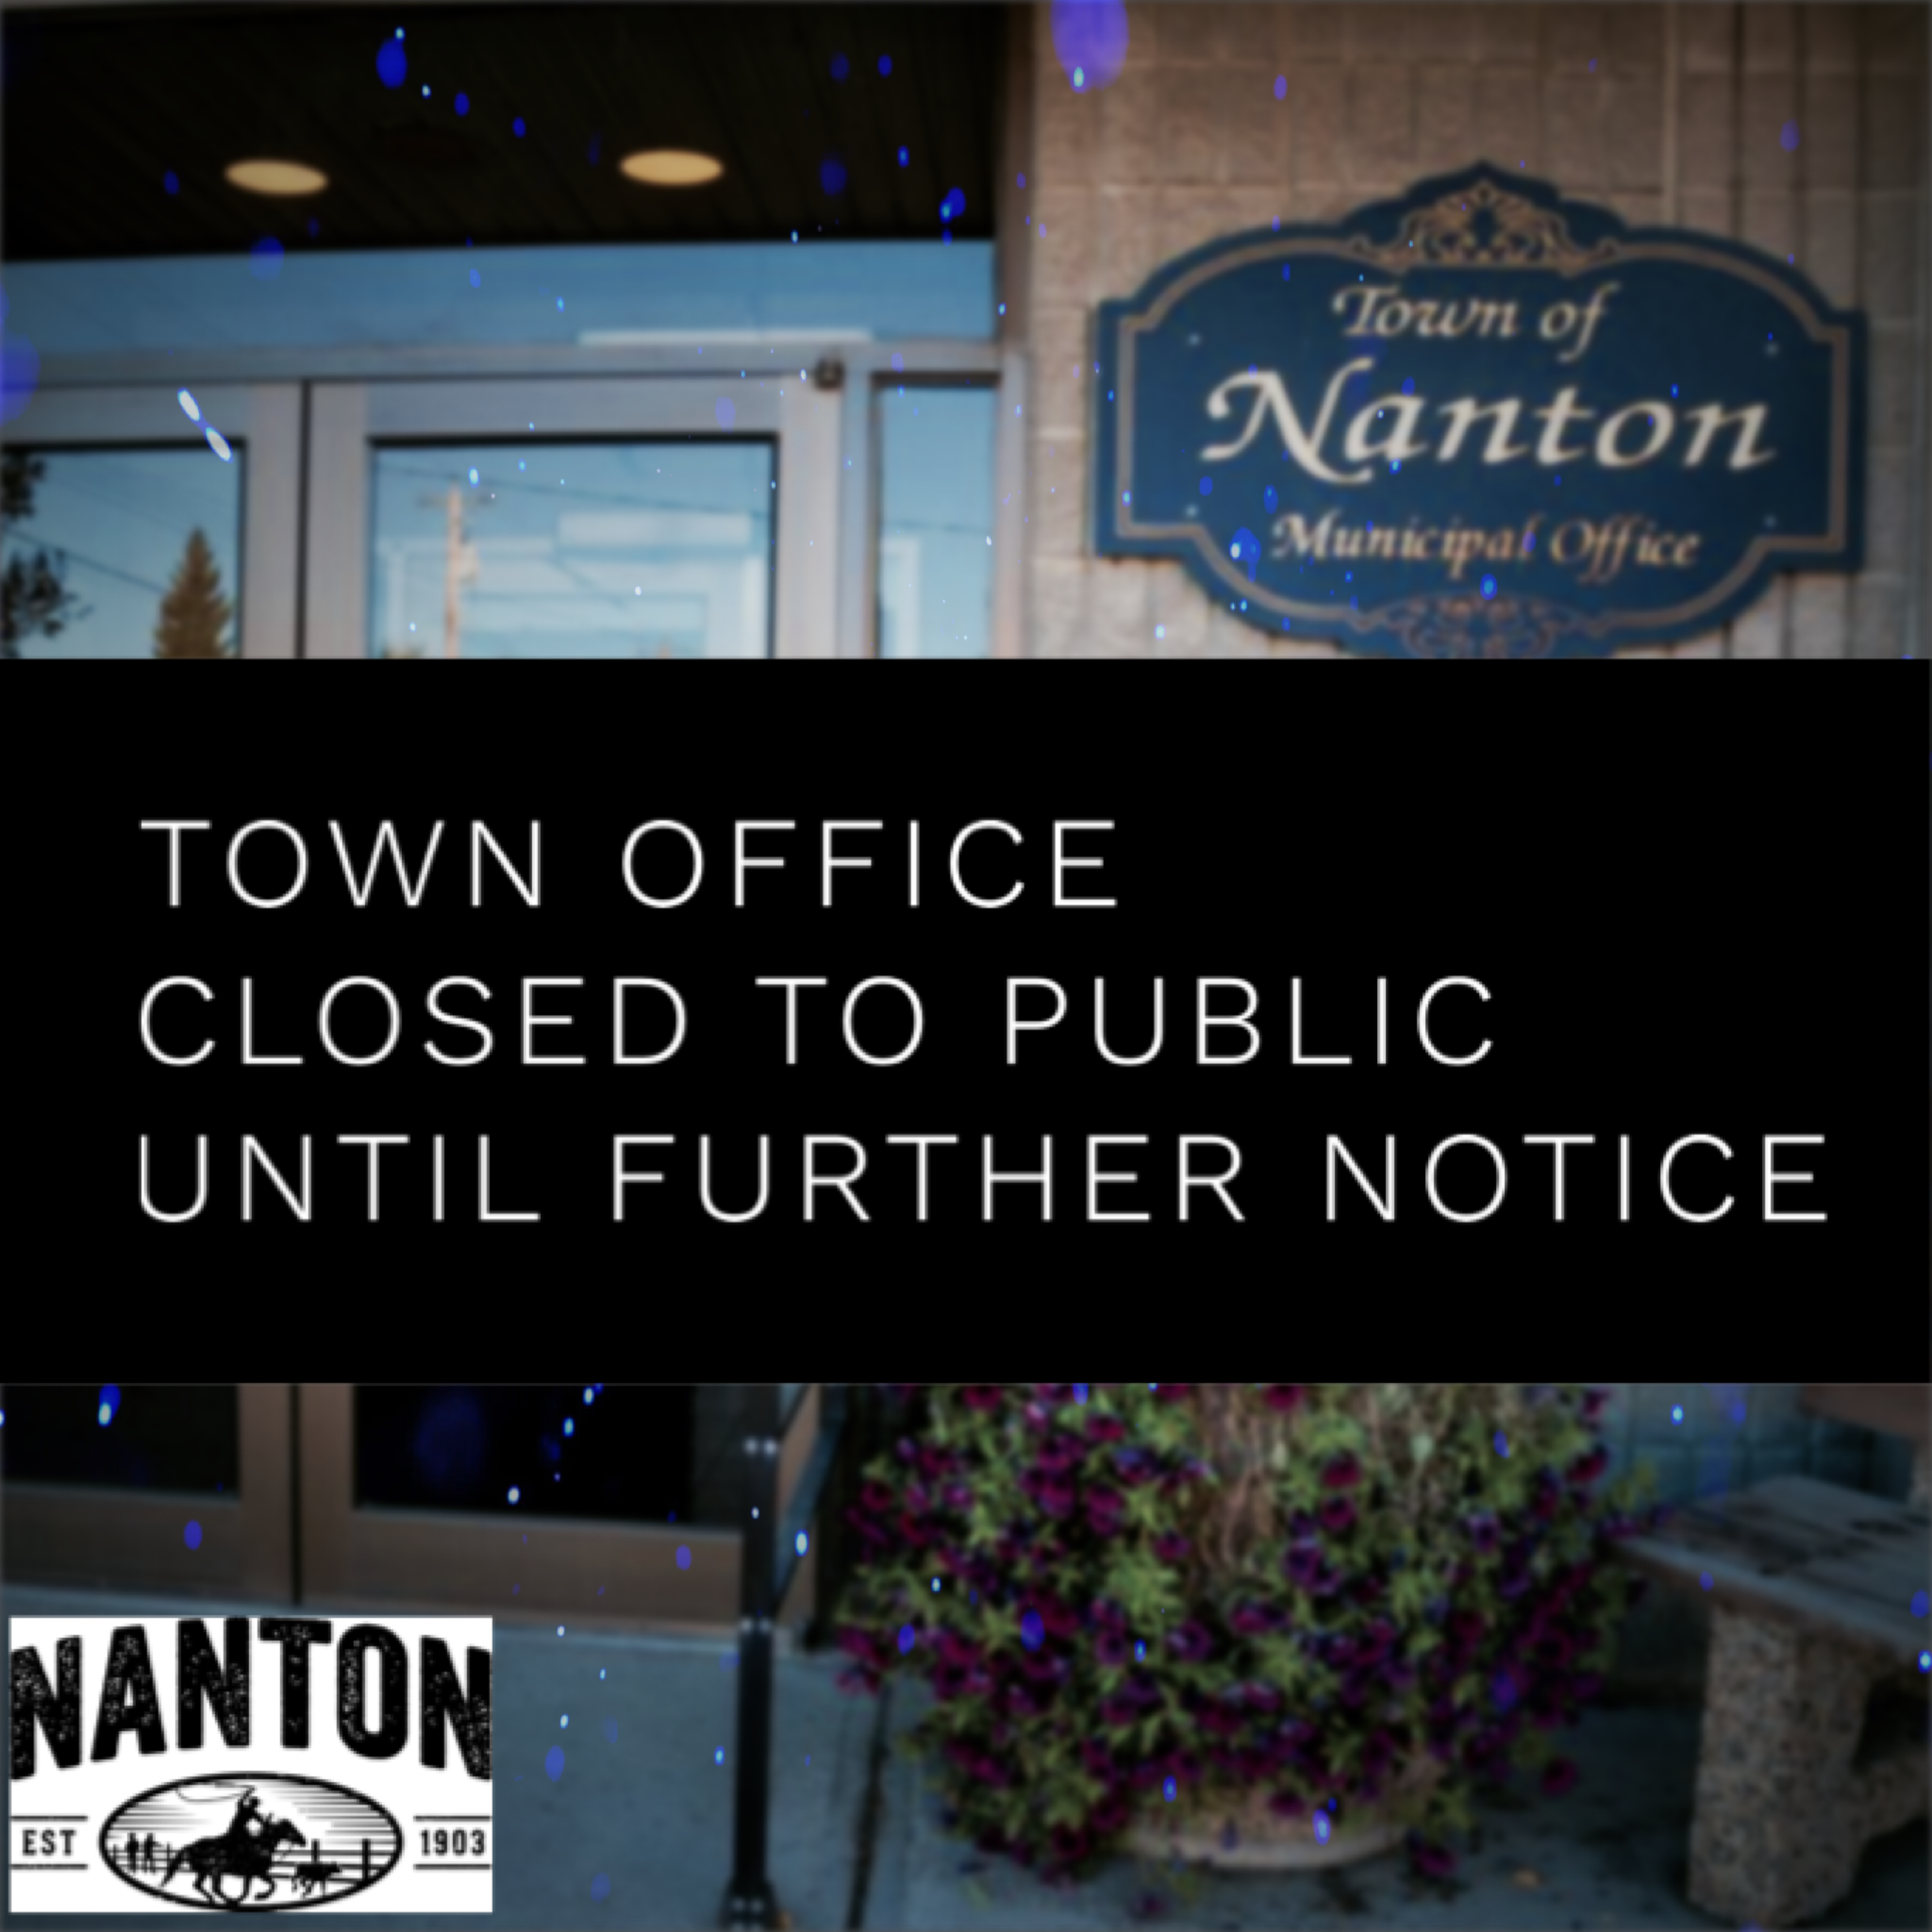 Town Office Closed to Public